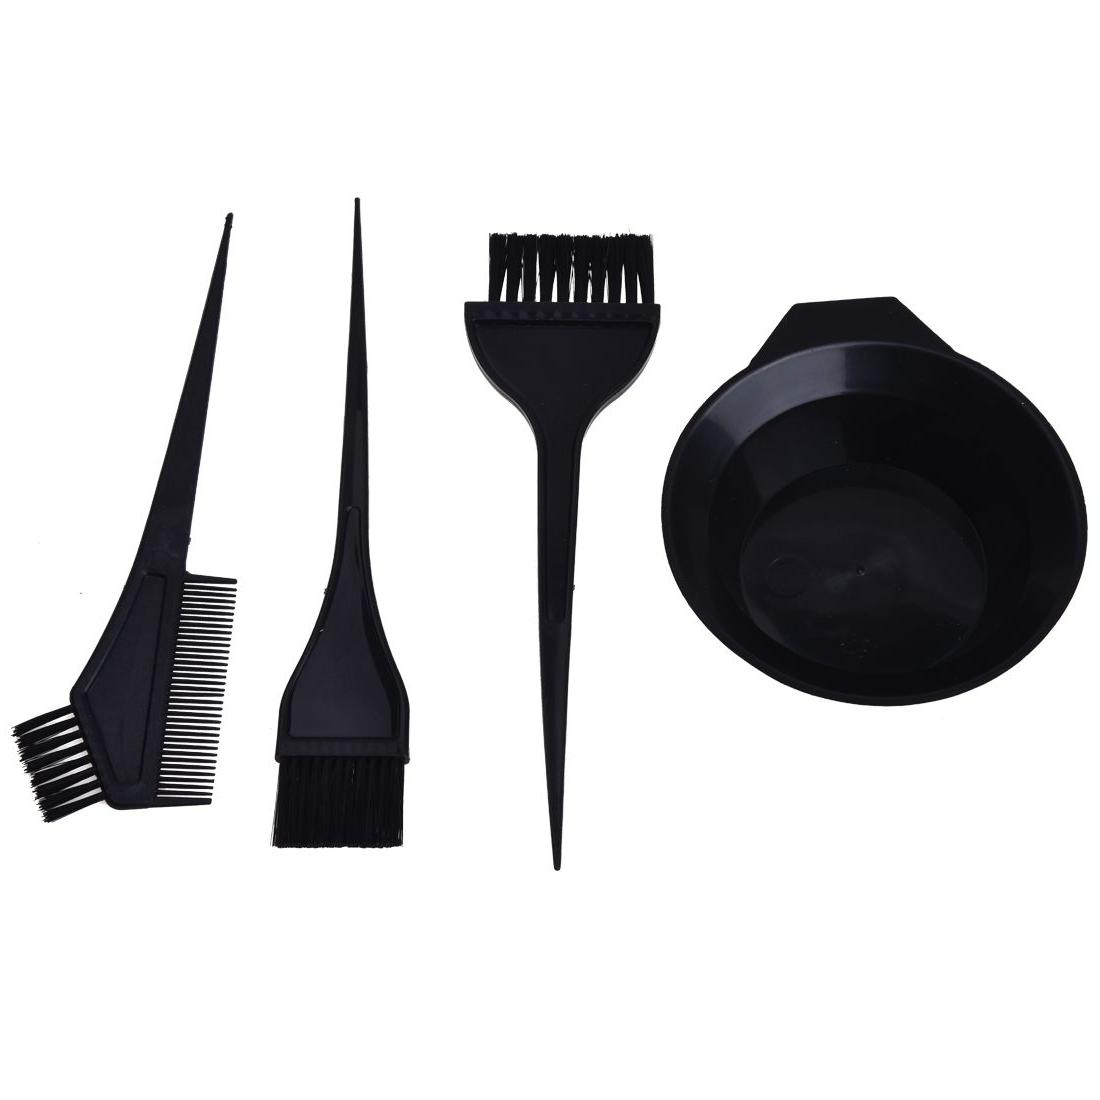 <font><b>Hair</b></font> with 3 brushes Plastic Dye Styling Accessories